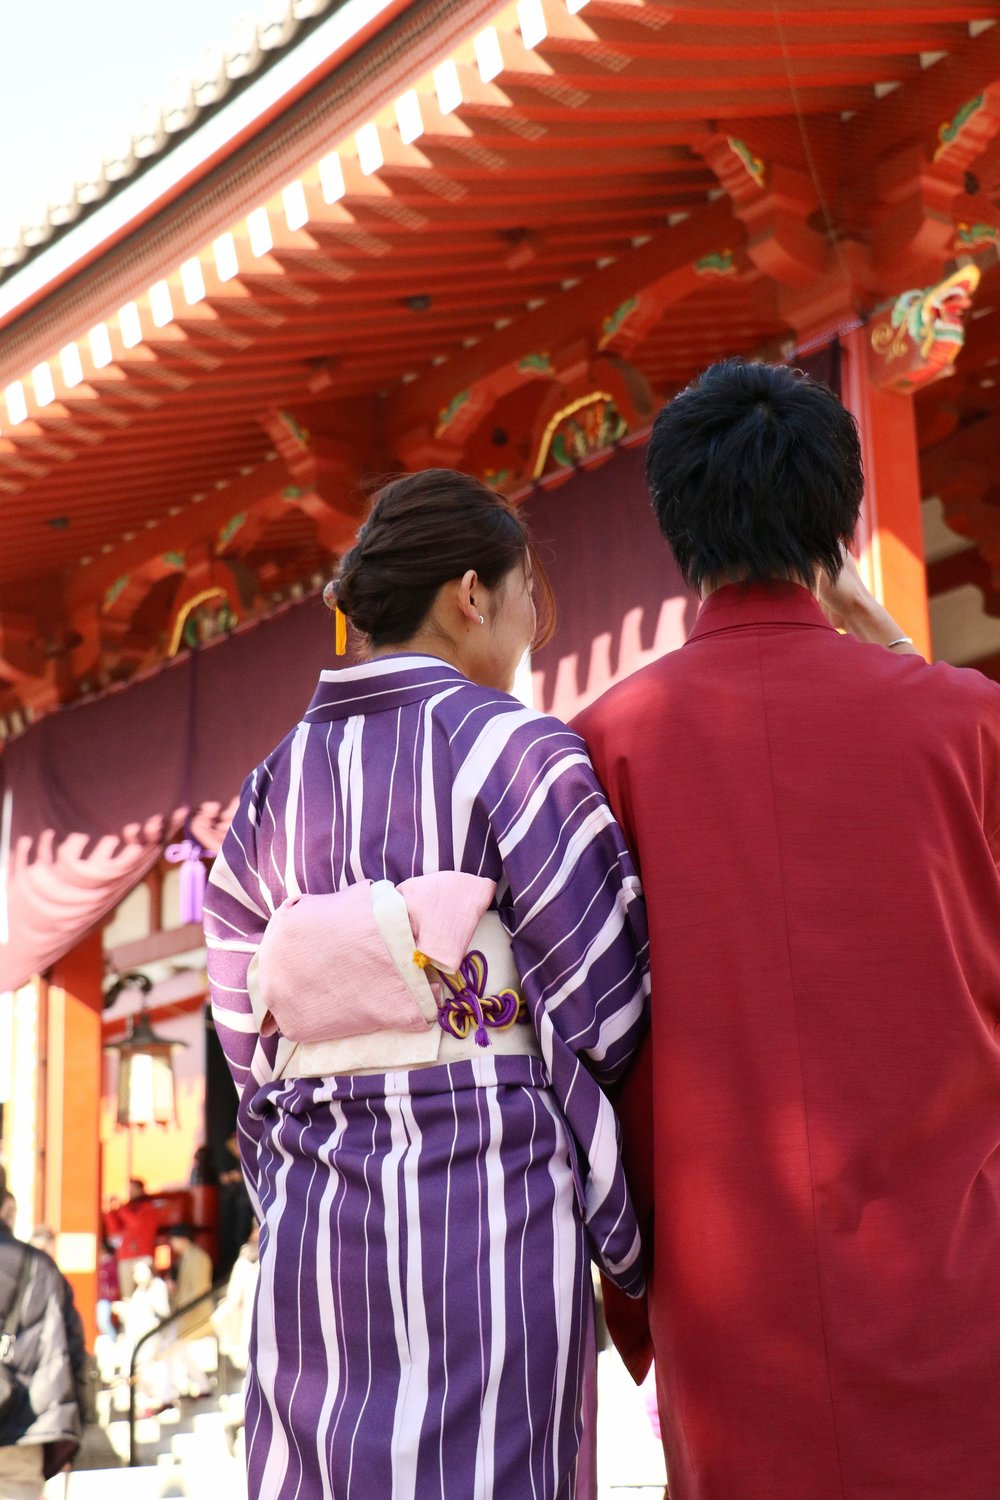 A young couple in traditional Japanese Kimonos walk through Senso-Ji.